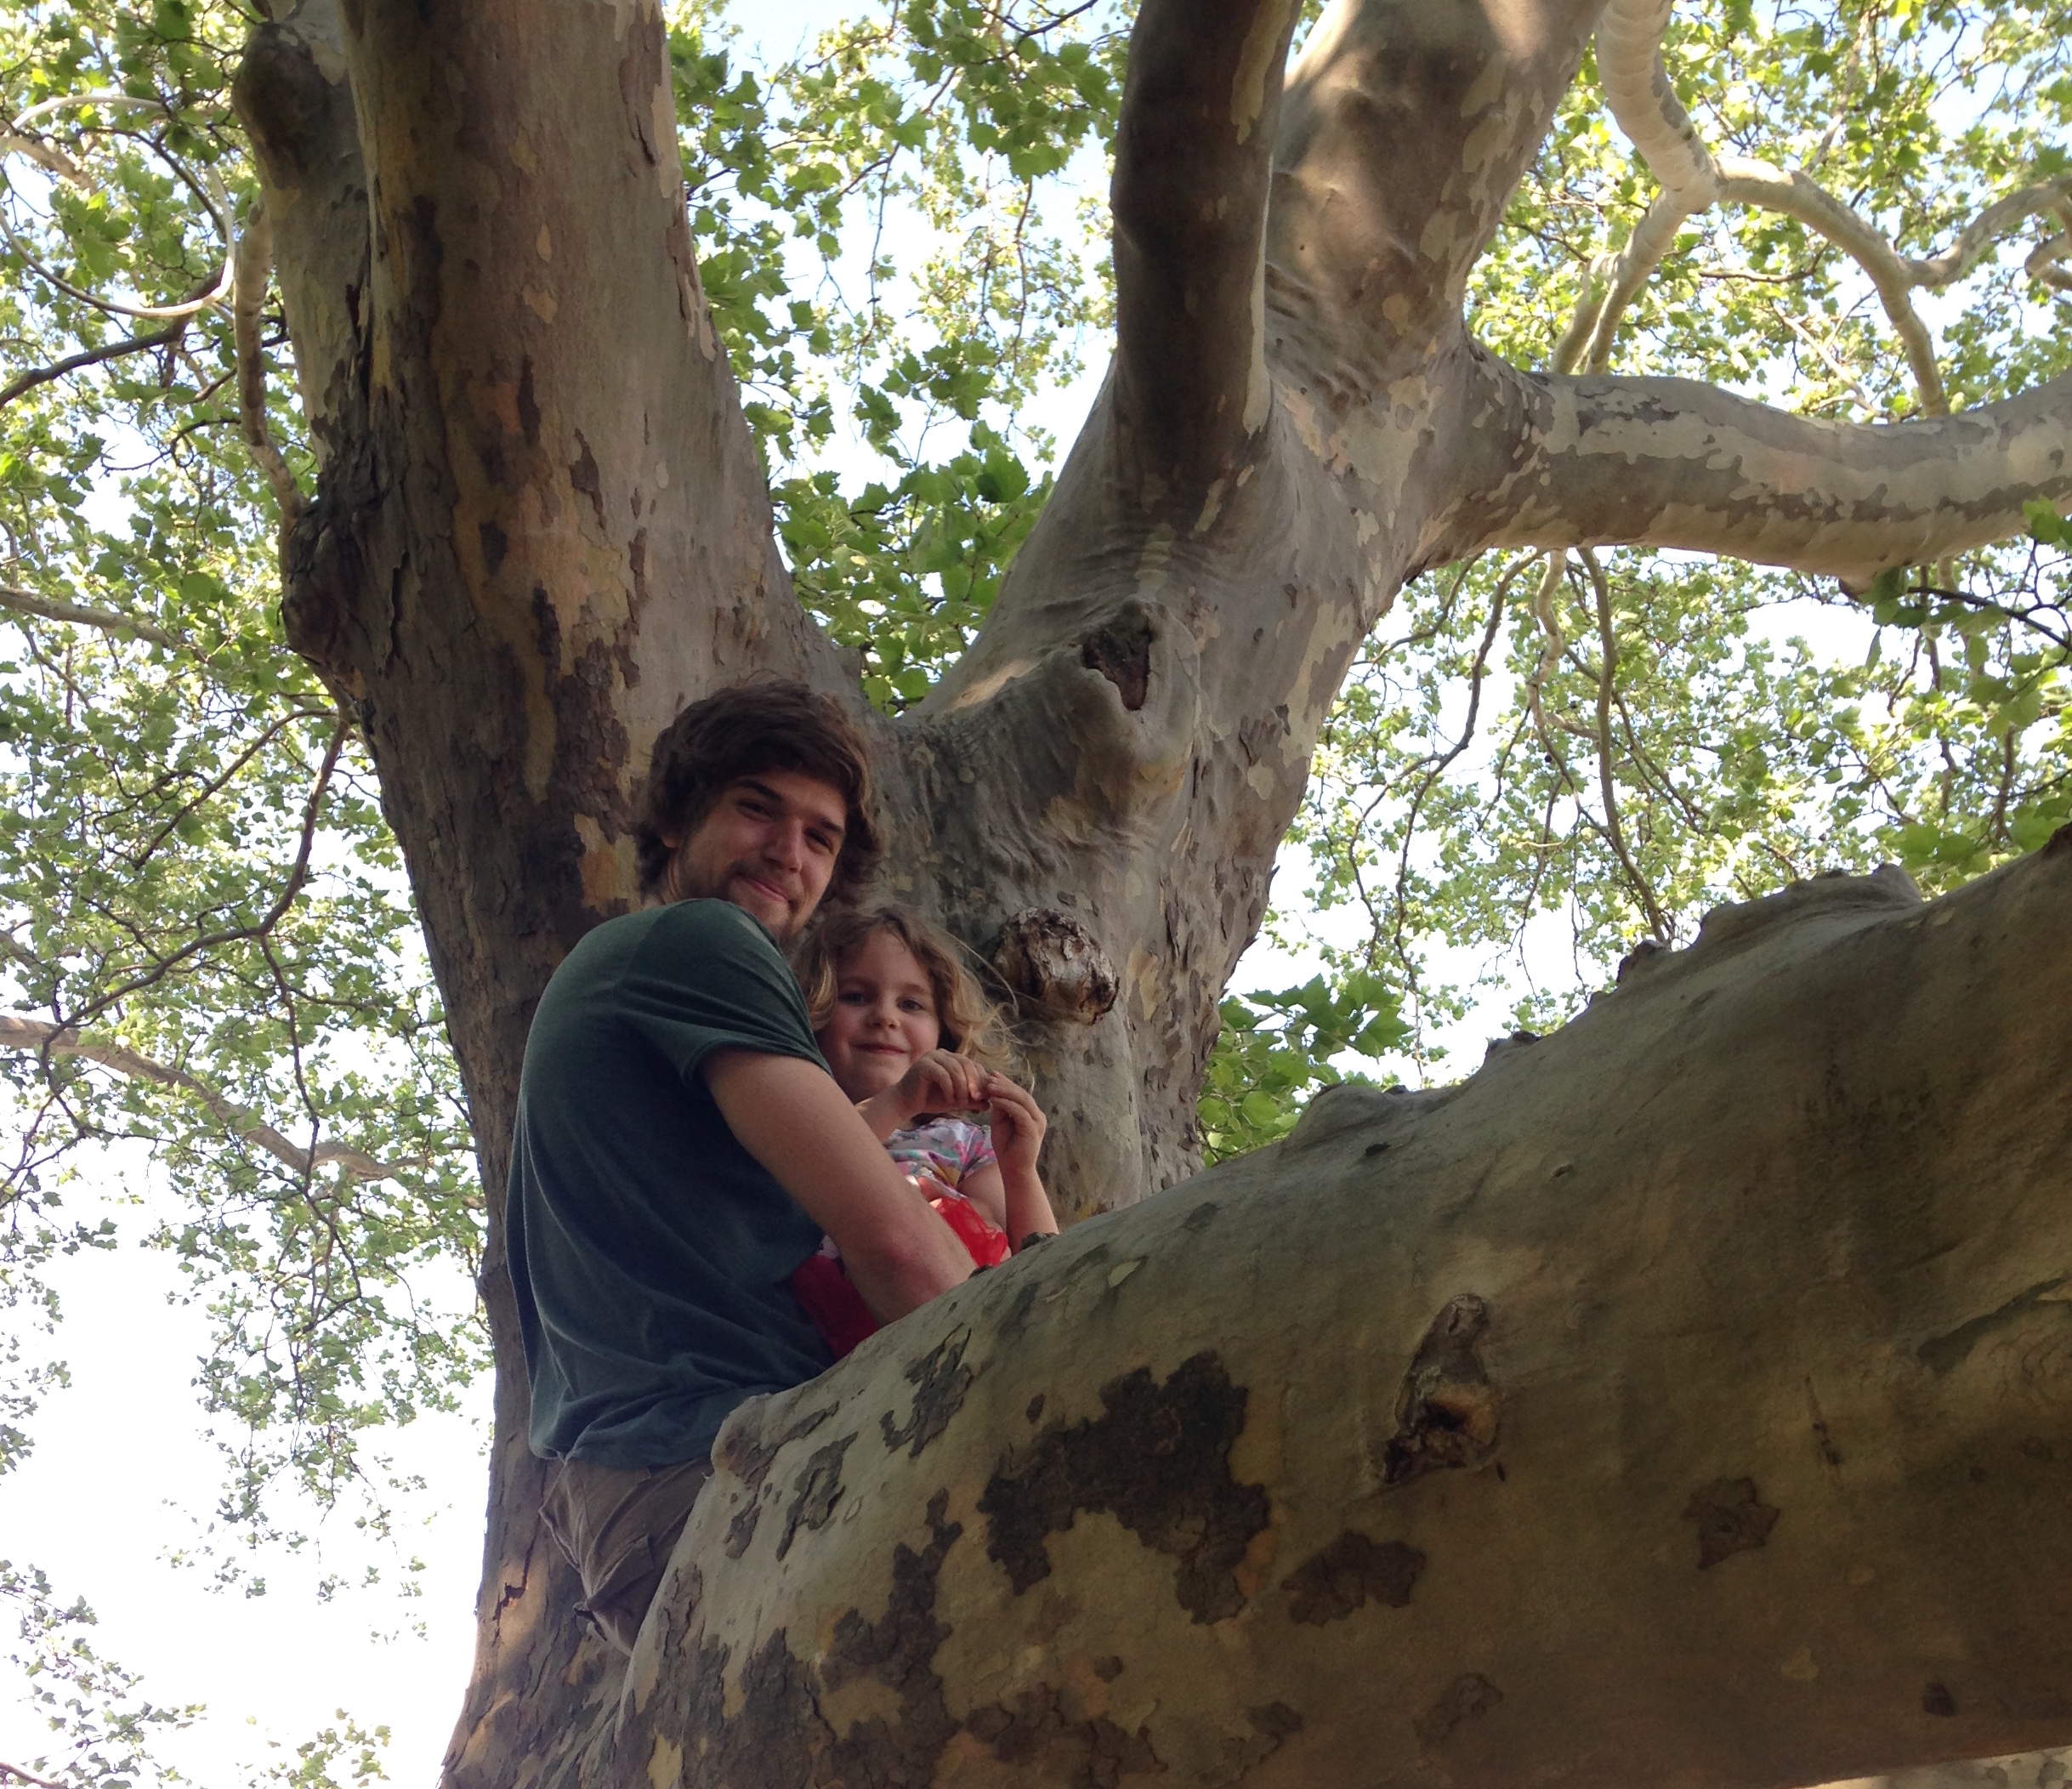 Mark and Hazel in the sycamore tree